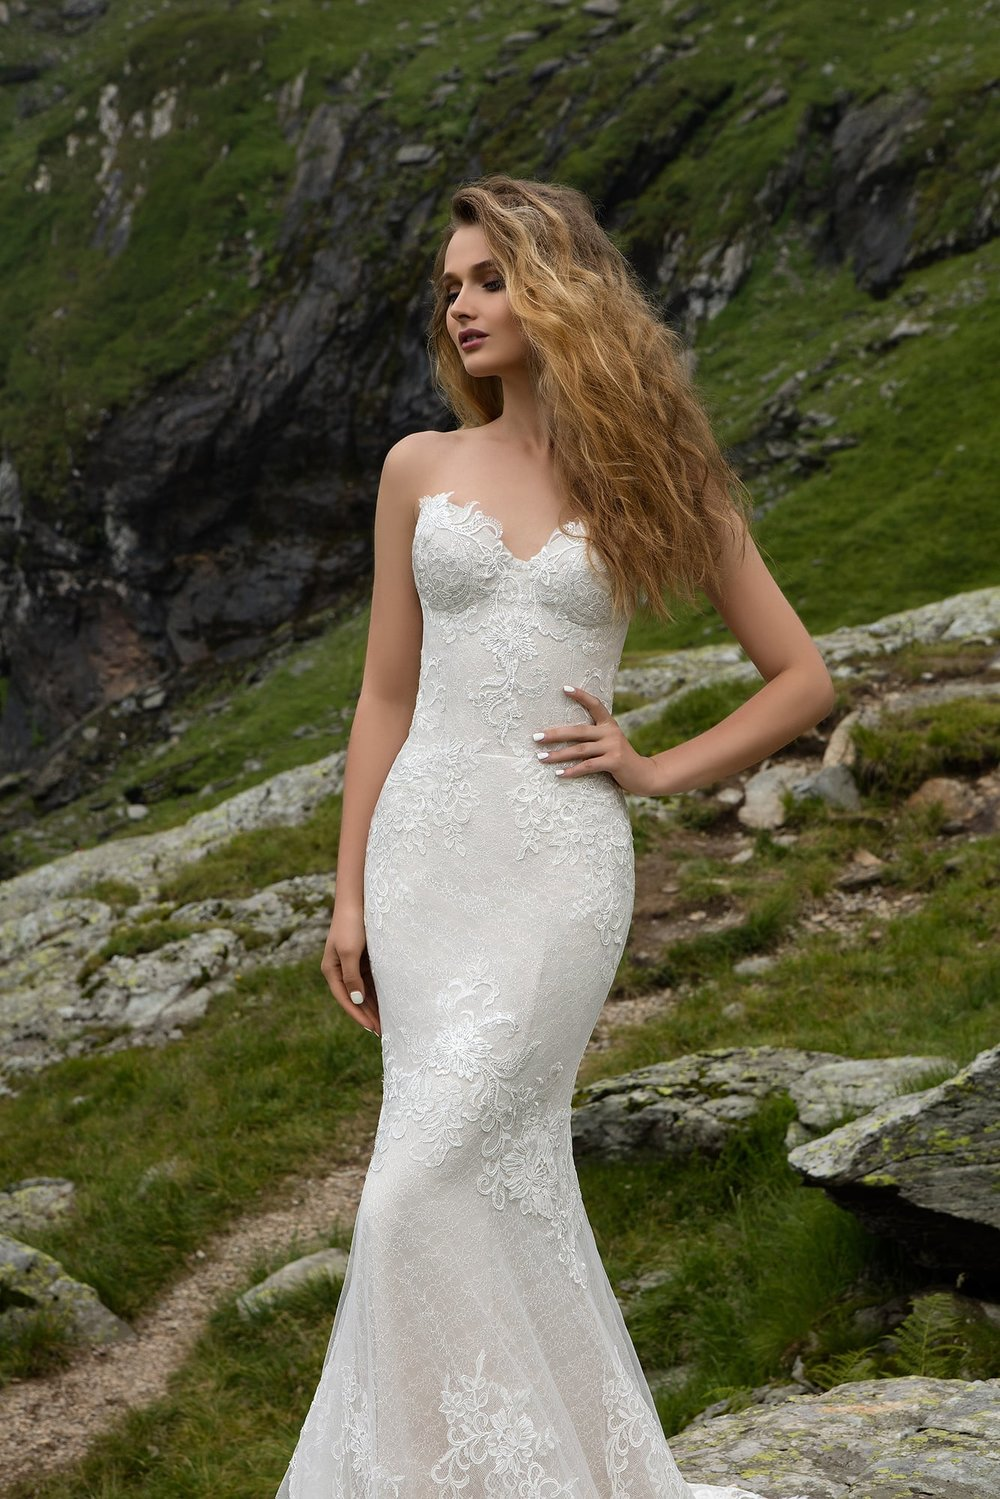 RUMBA wedding dress $900